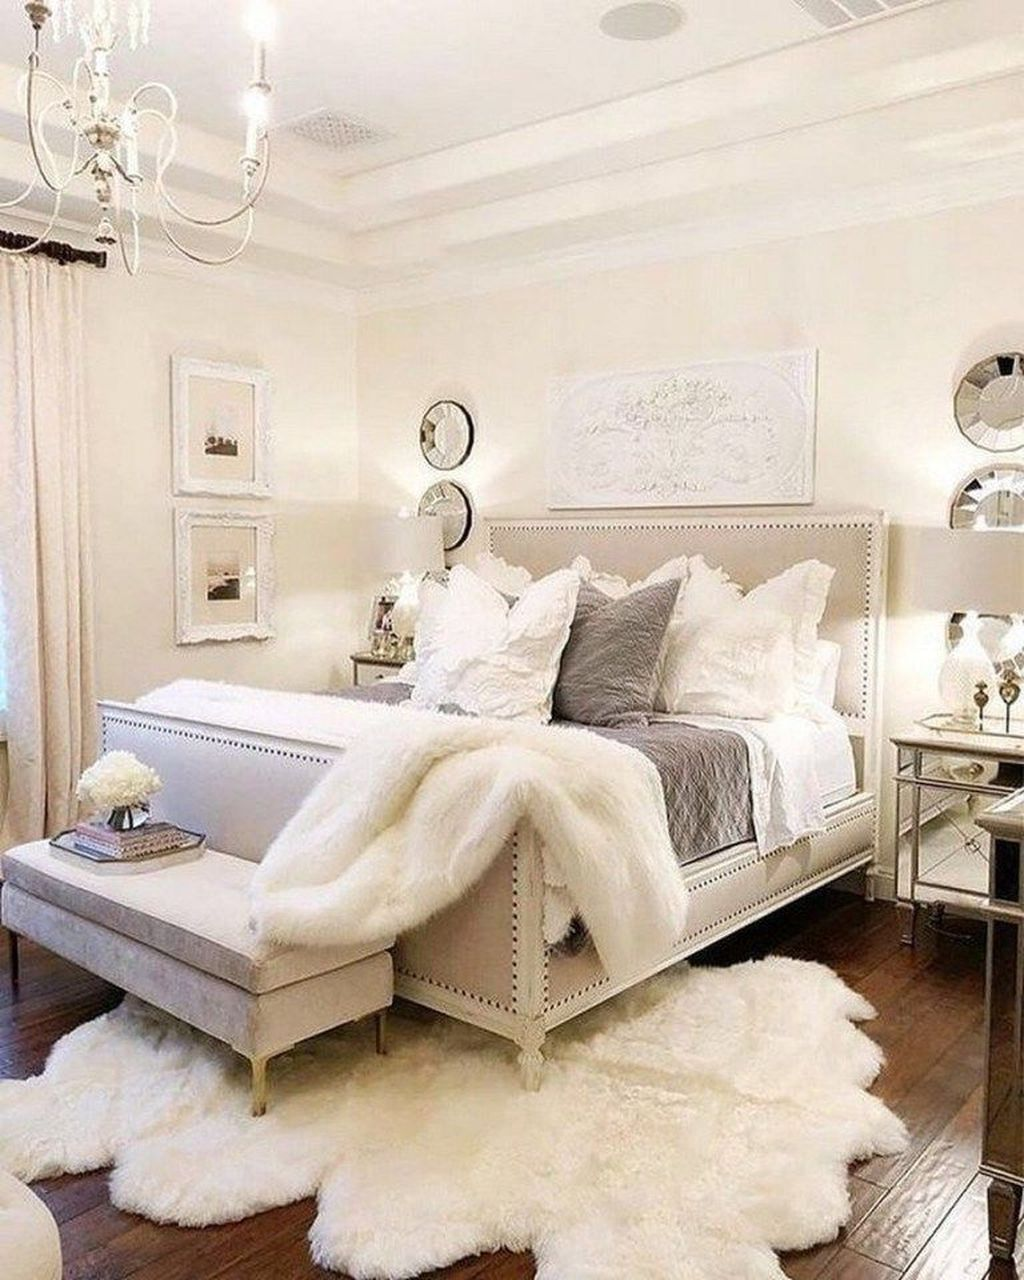 Stunning French Bedroom Decor Ideas That Will Inspire You 21